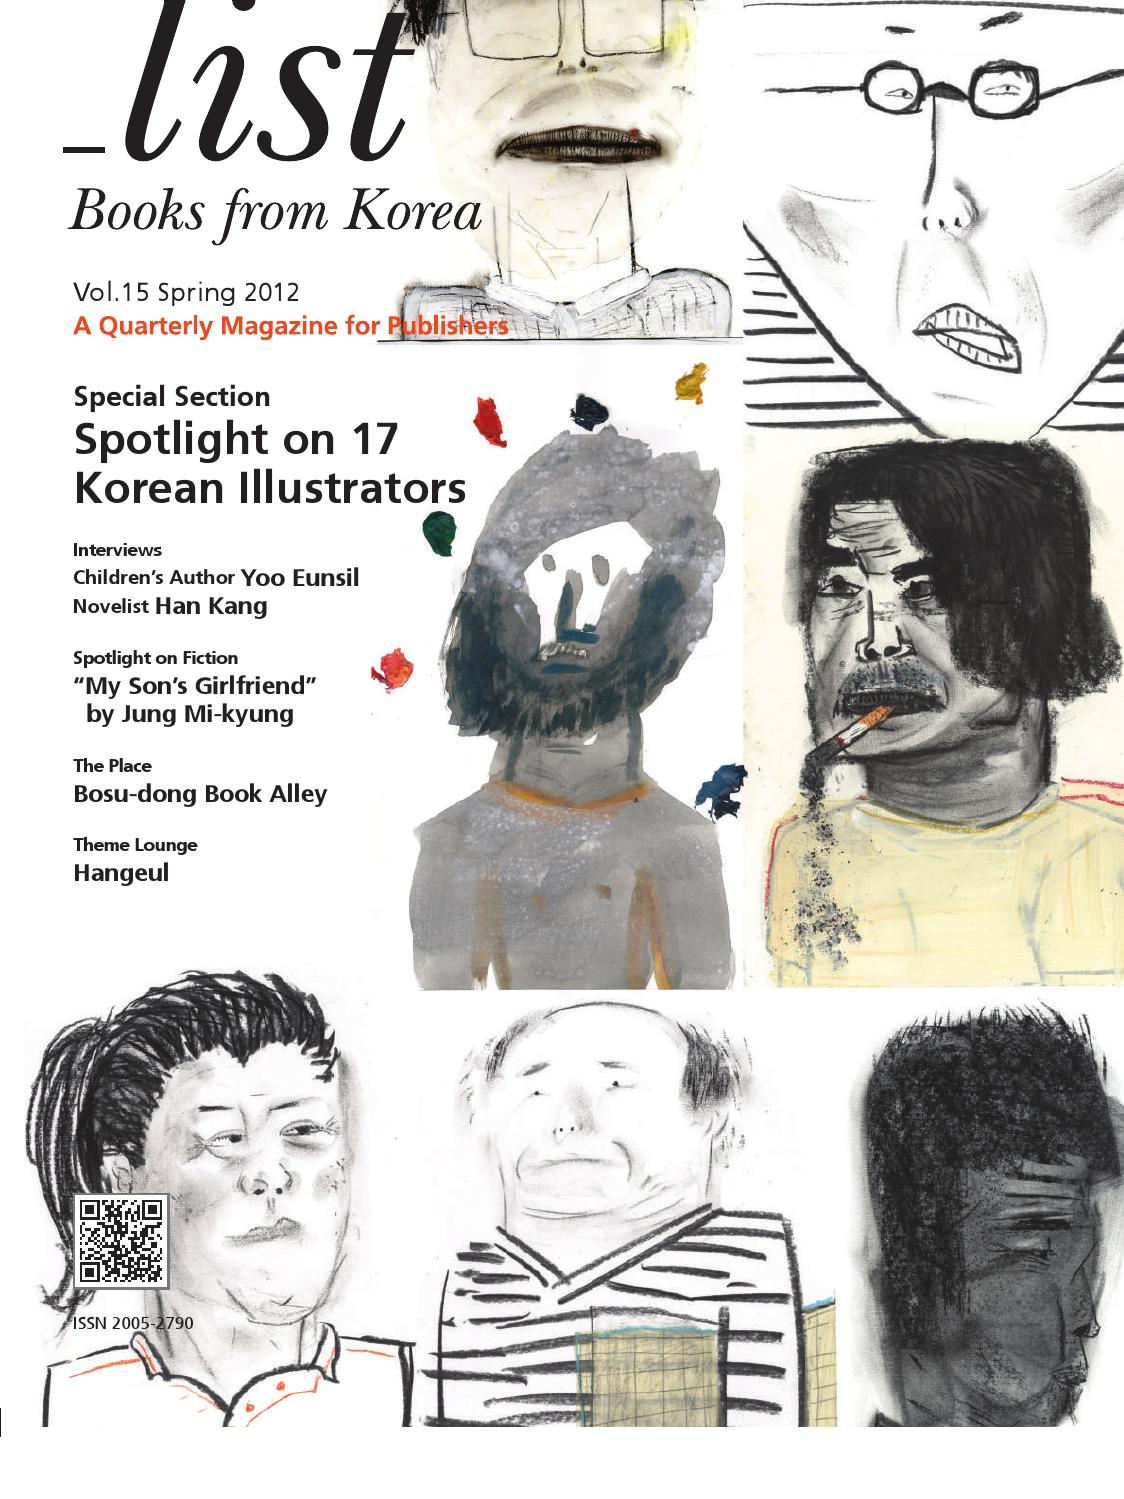 List books from korea vol15 spring 2012 by lti korea library list books from korea vol15 spring 2012 by lti korea library issuu biocorpaavc Images